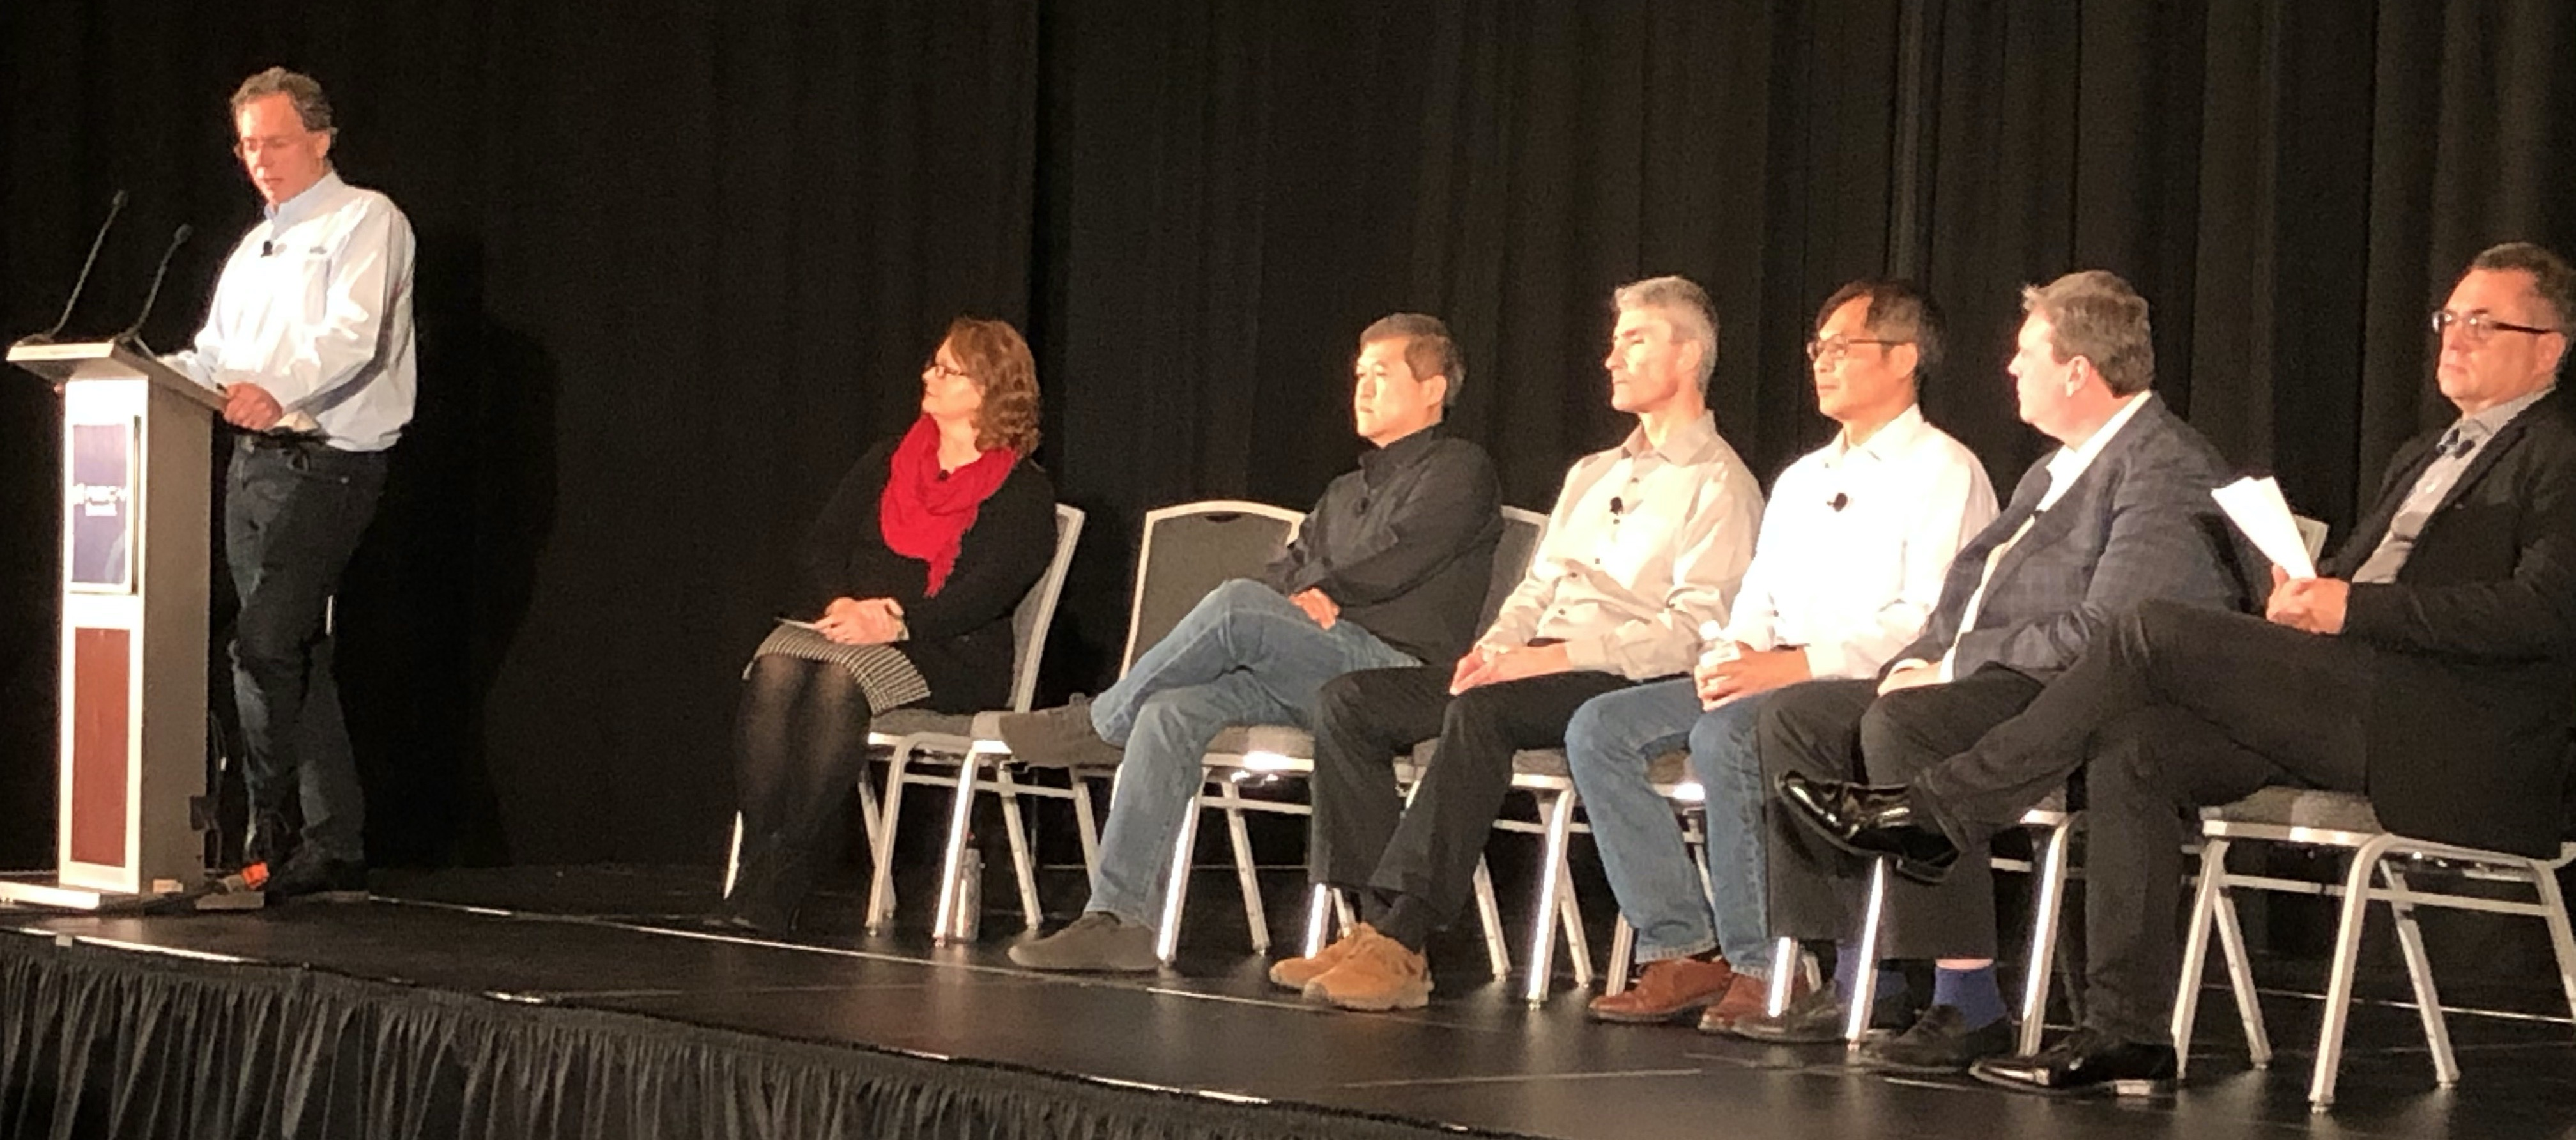 Verification Panel at RISC-V Summit 2019